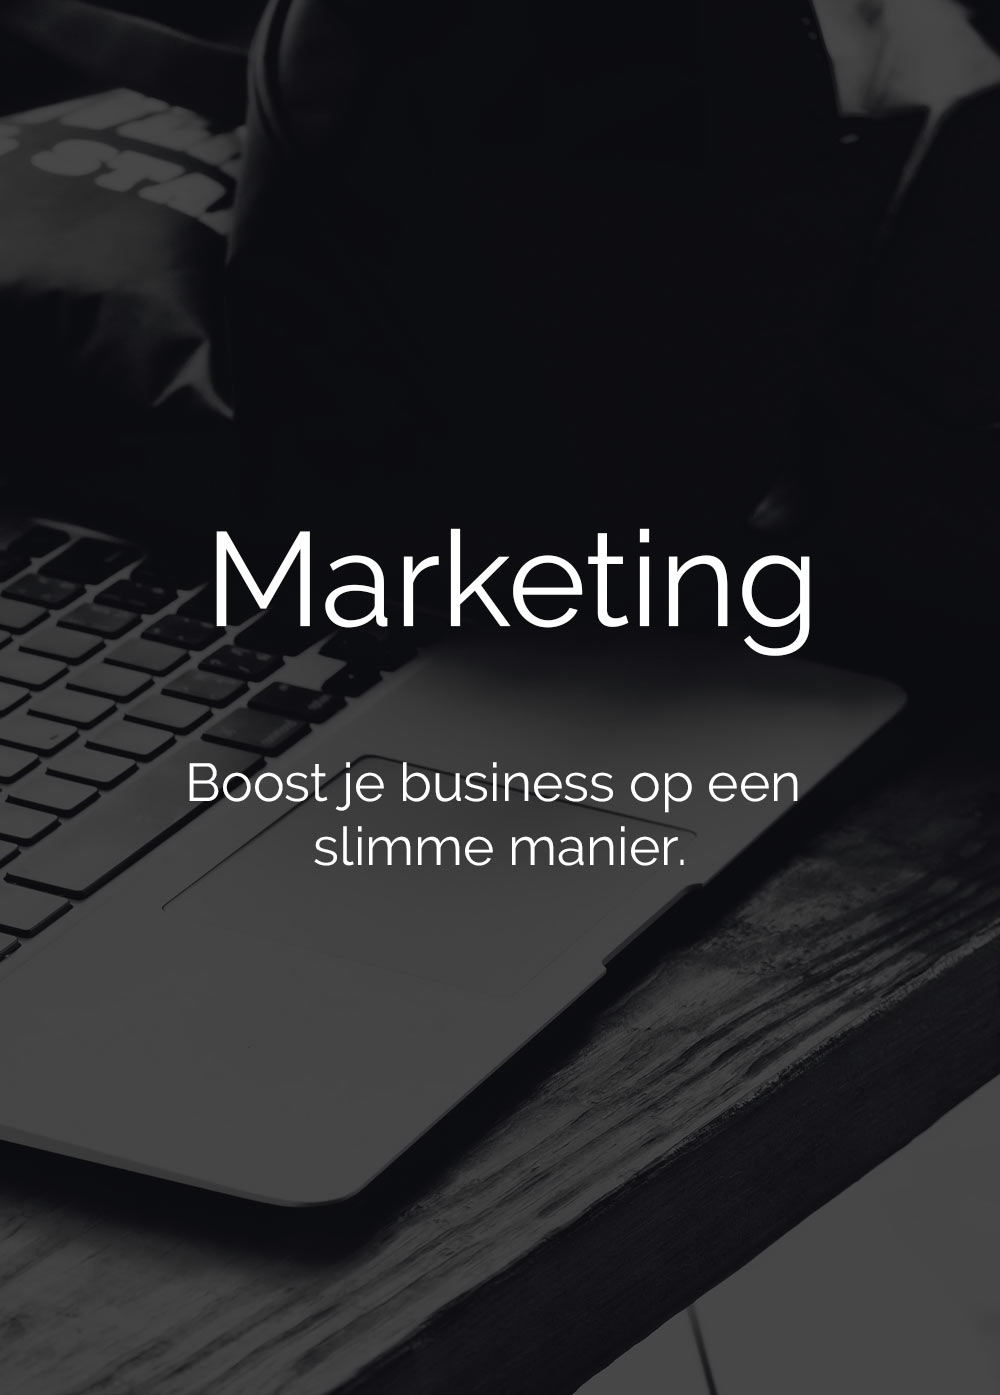 Marketing - Boost je business op een slimme manier.